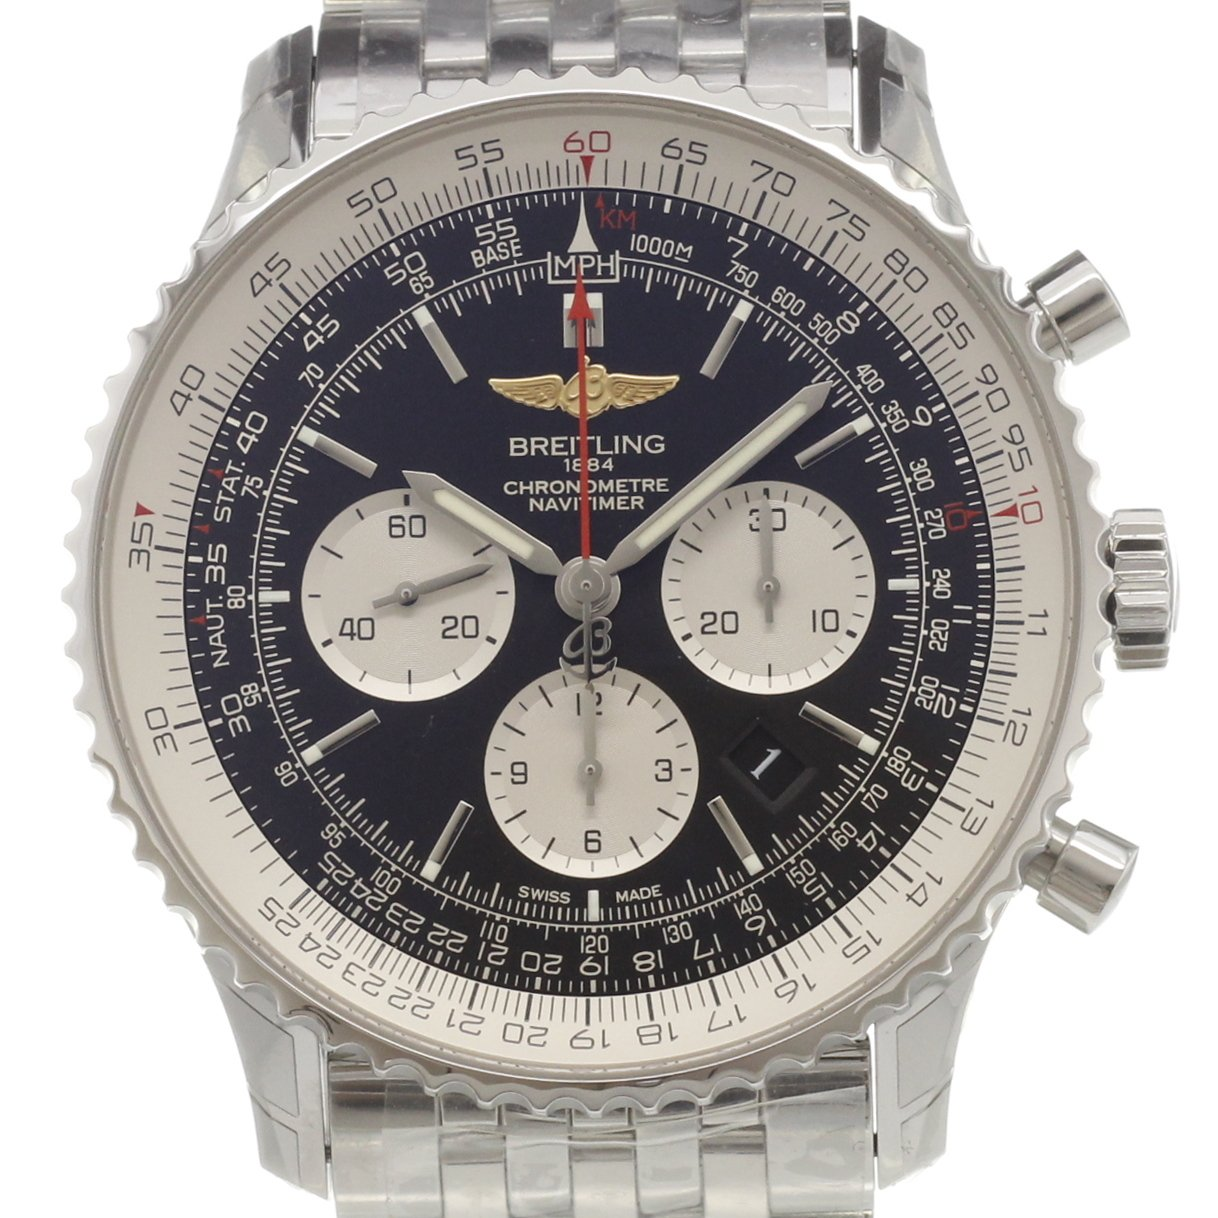 Breitling Watches for Sale: Offerings and Prices | CHRONEXT